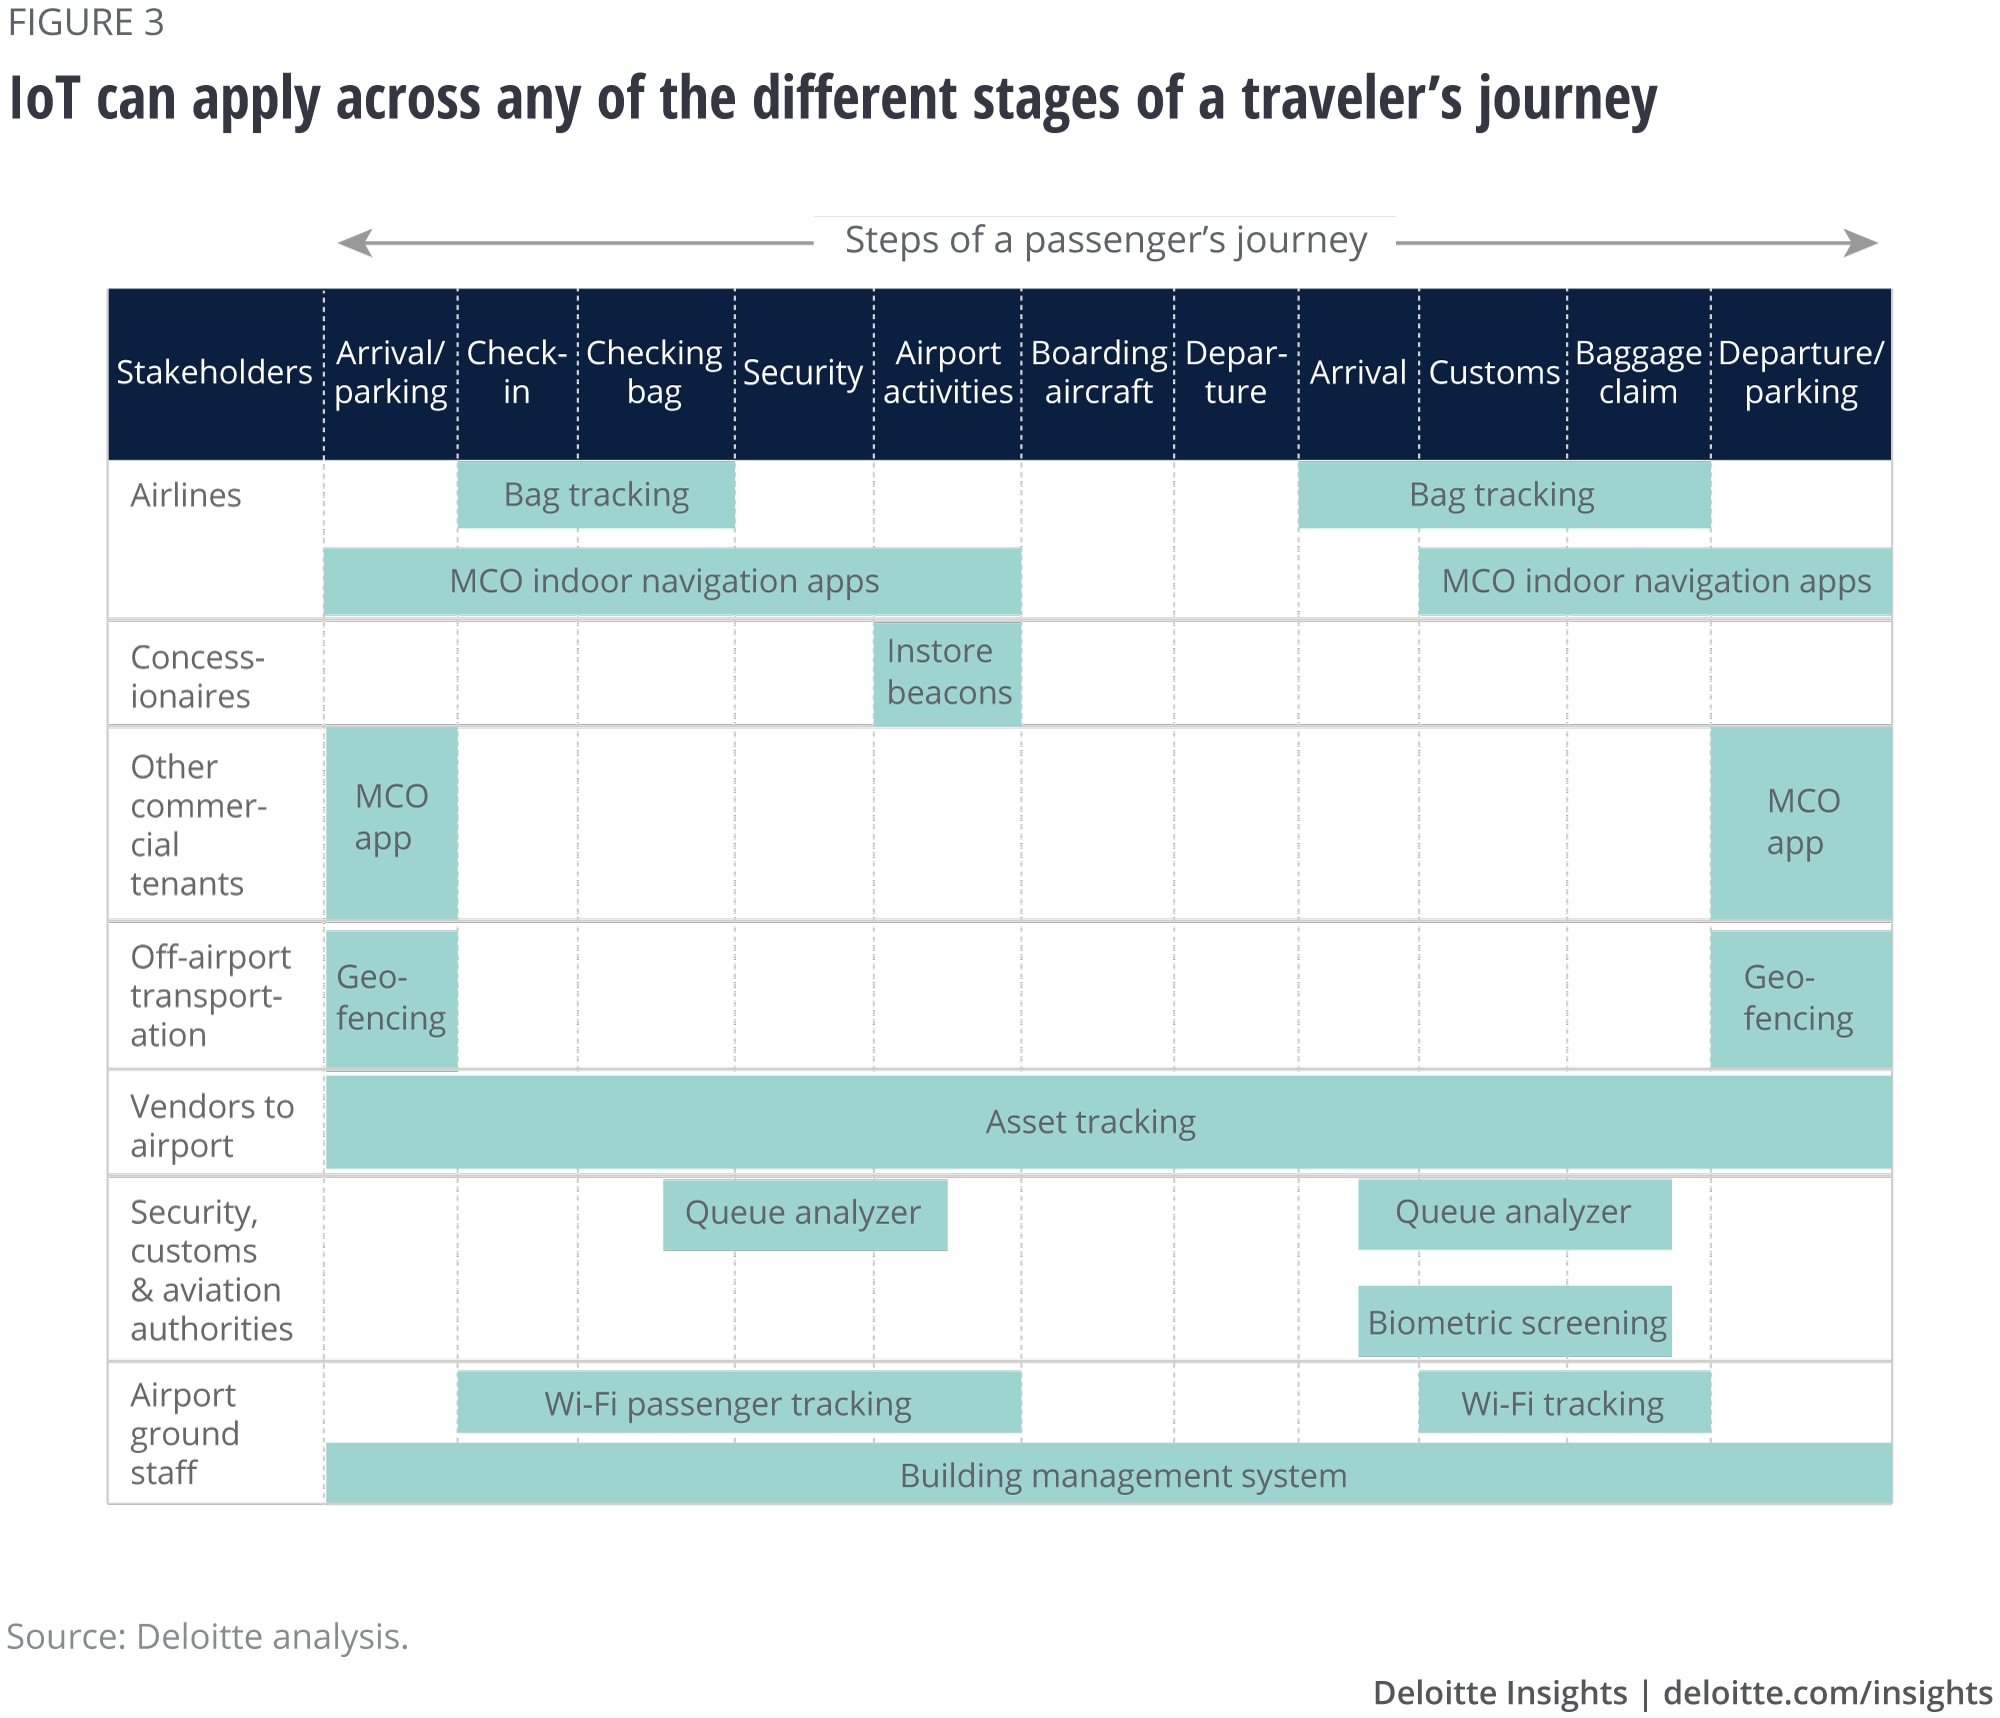 IoT can apply across any of the different stages of a traveler's journey